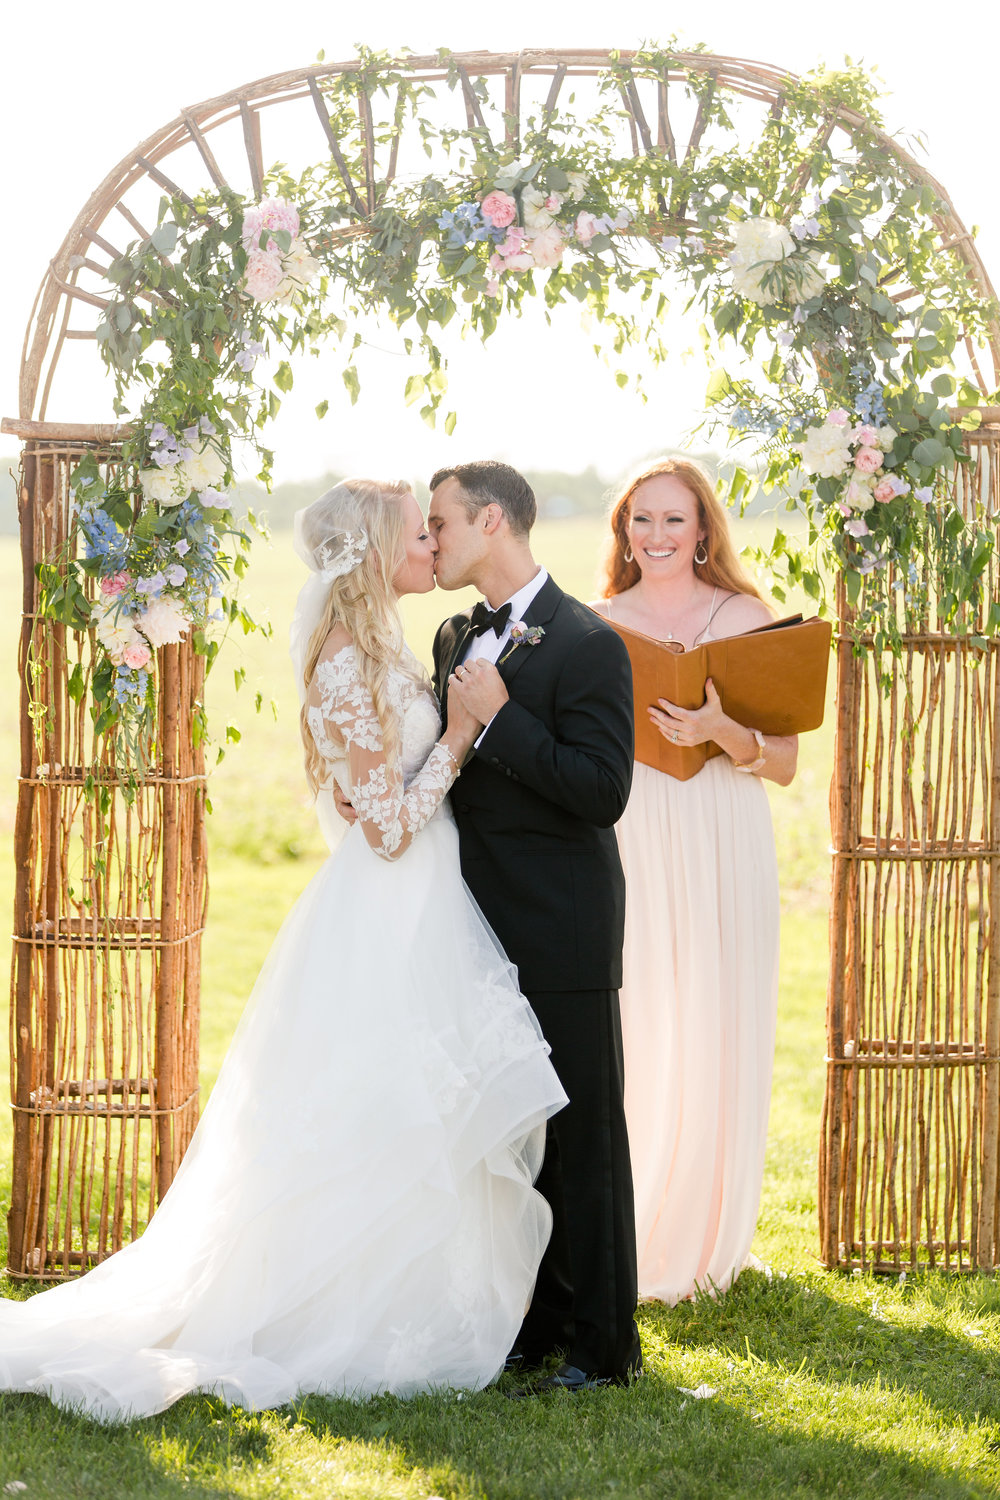 NJ Wedding, Private Residence, Ceremony Arch, Aisle Decor, A Garden Party